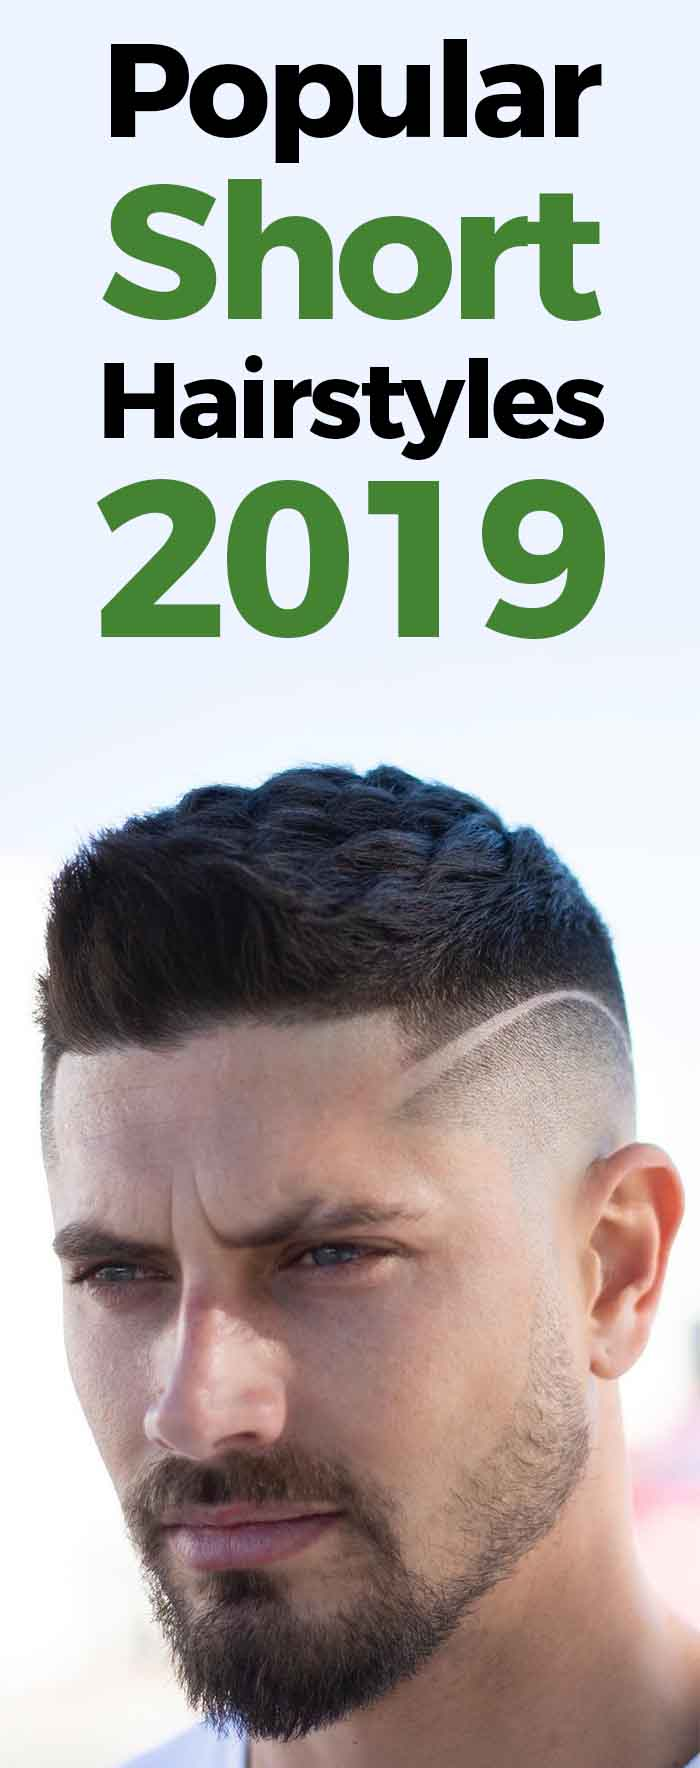 Hairstyles For Men 2019